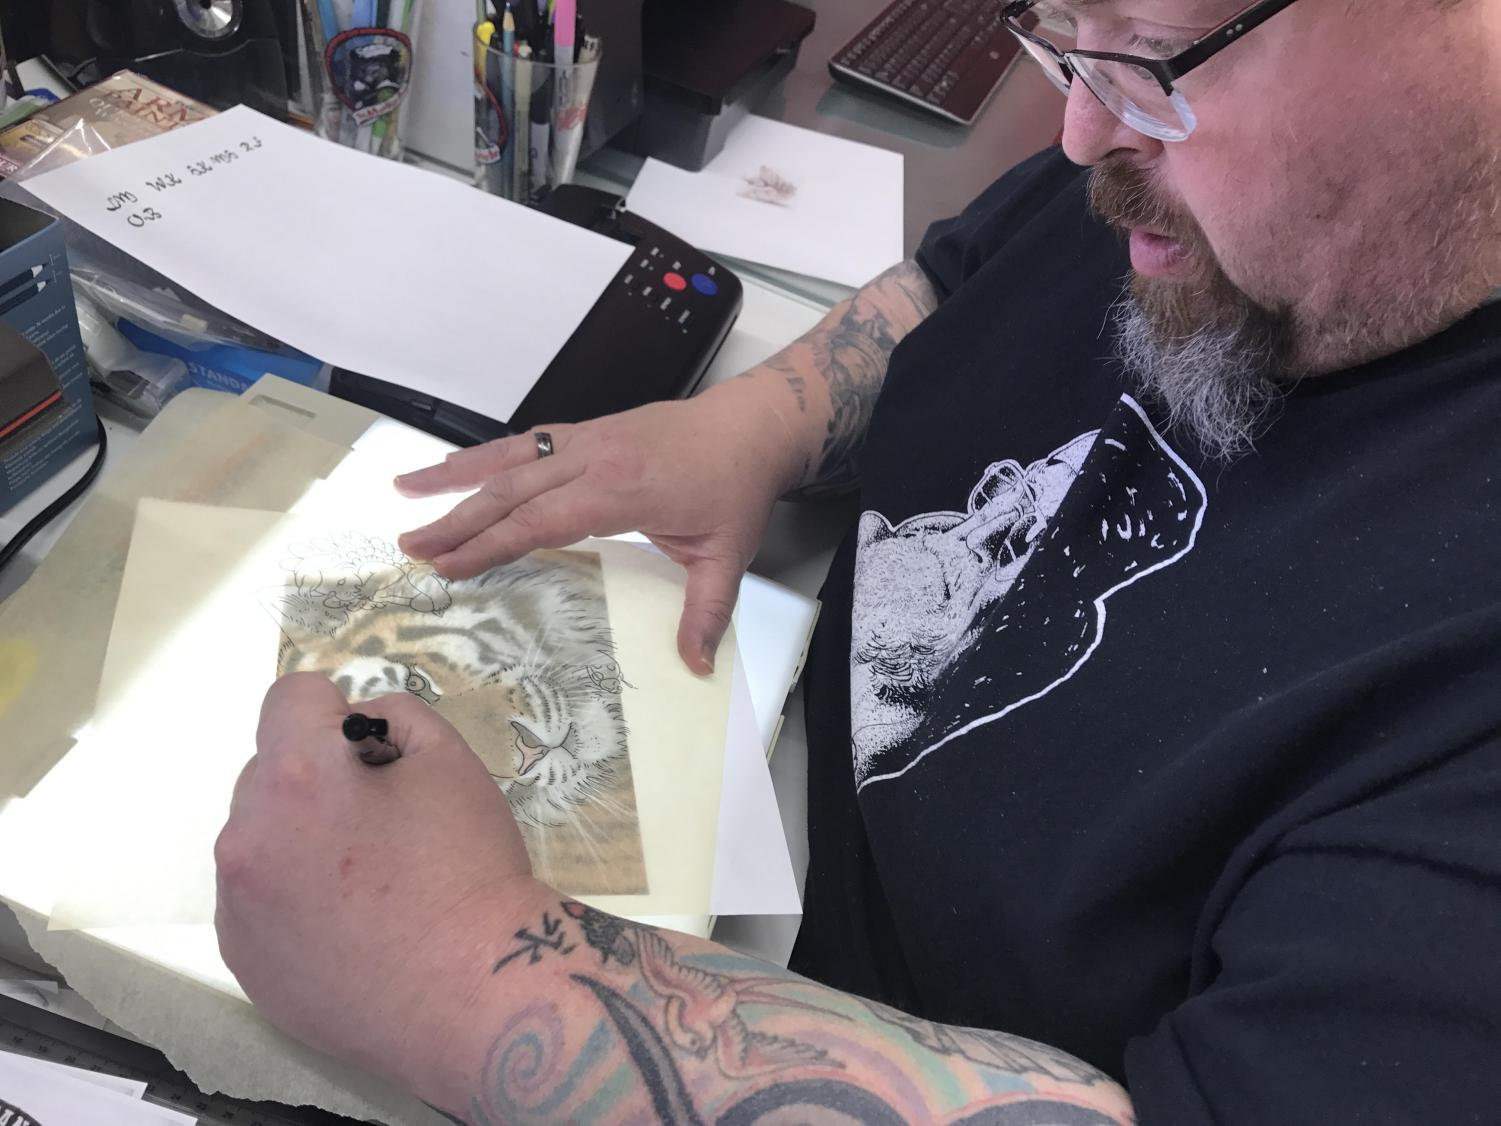 Owner of All-American Tattoo, Tom Morris, working on a Tiger tattoo sketch. All American Tattoo has been in business for 10 years | Sam Jackson for The Easterner